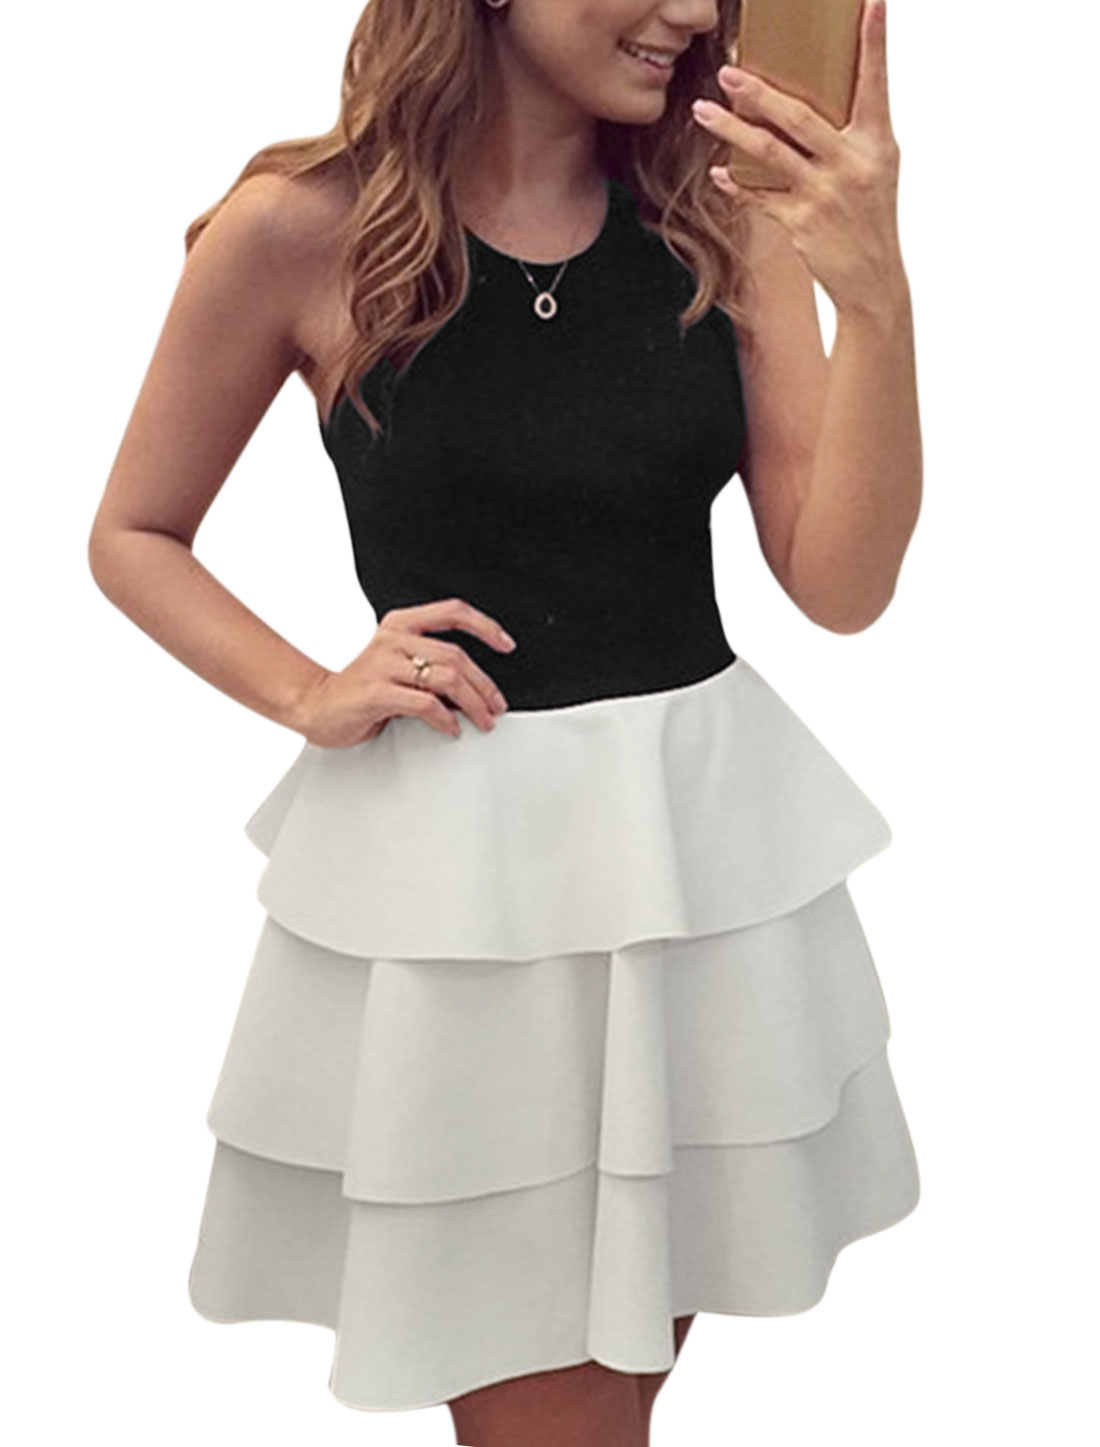 Women Round Neck Crossover Back Sleeveless Tiered A Line Dress Black White S